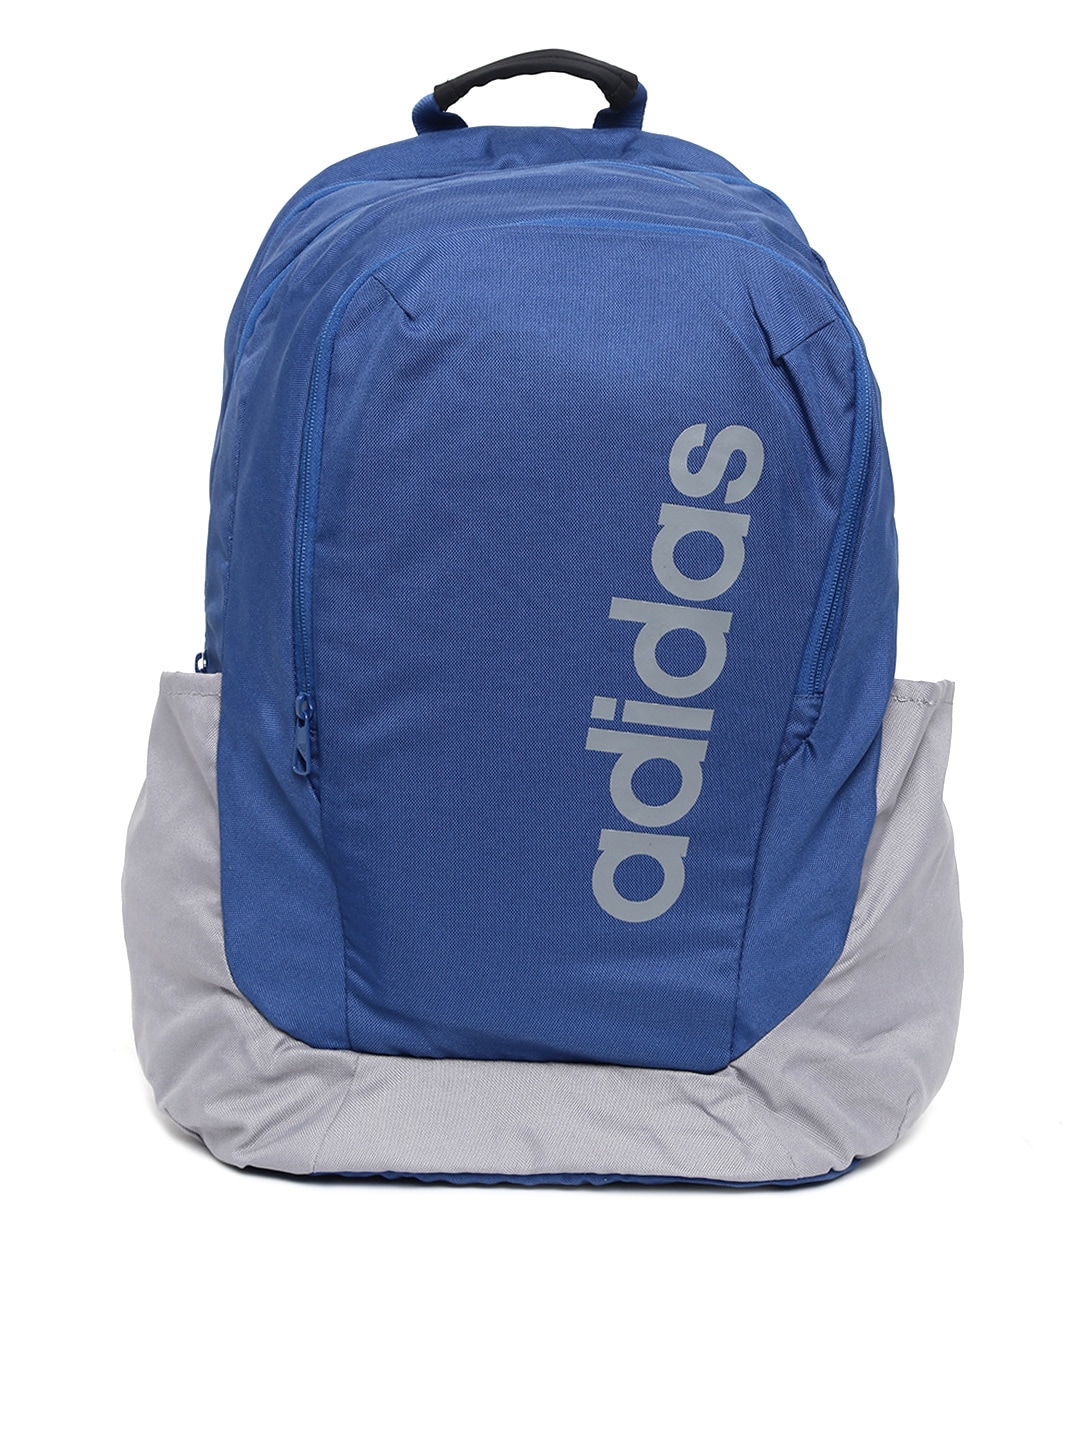 299f77b832b5 Adidas Accessories Backpacks Laptop Bags - Buy Adidas Accessories Backpacks  Laptop Bags online in India